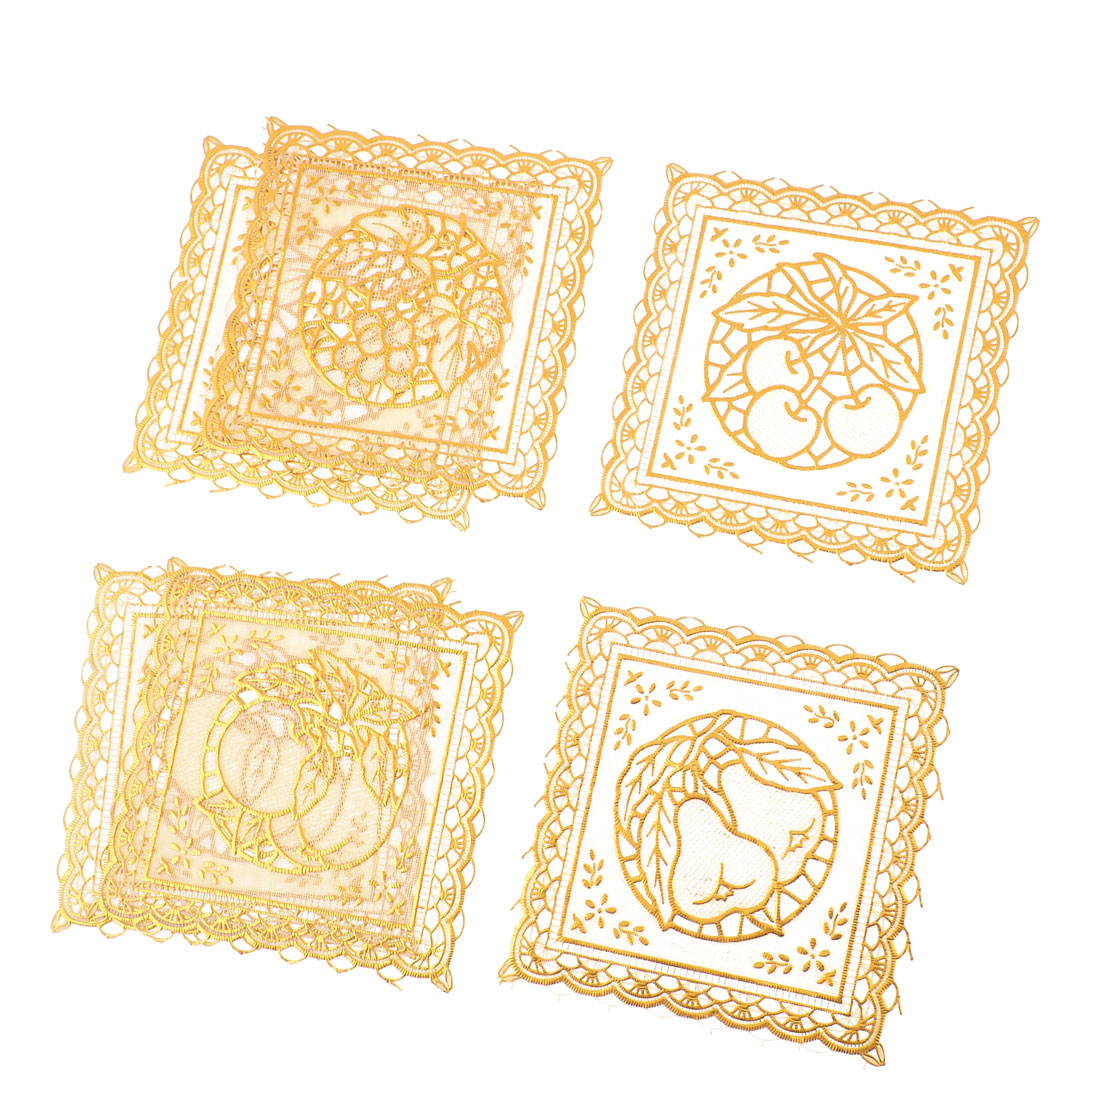 Gold Tone Square Hollow Out Fruit Pattern Desk Placemat Cup Mat Pad 6 Pcs